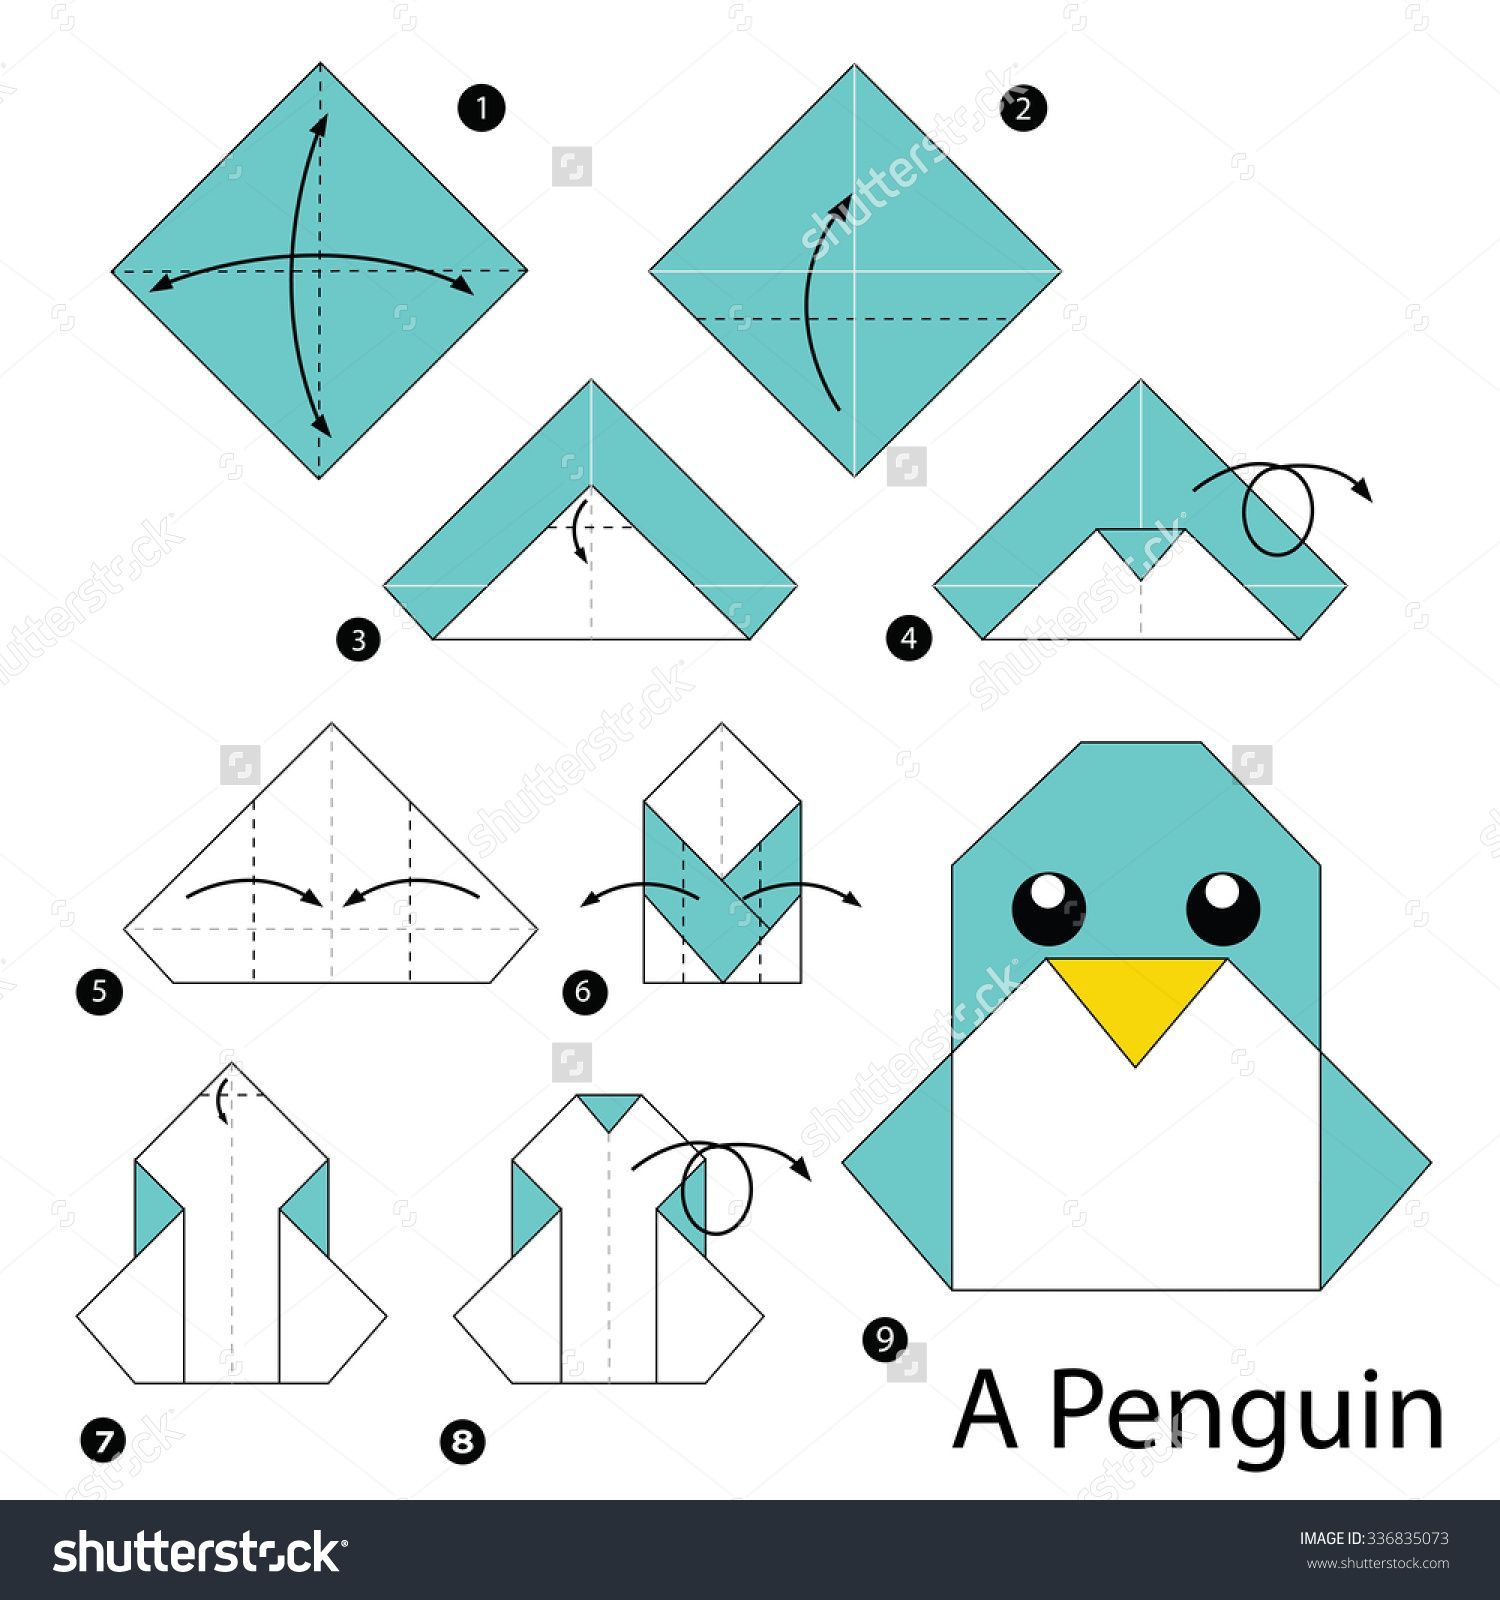 step by step instructions how to make origami A Penguin ... - photo#48